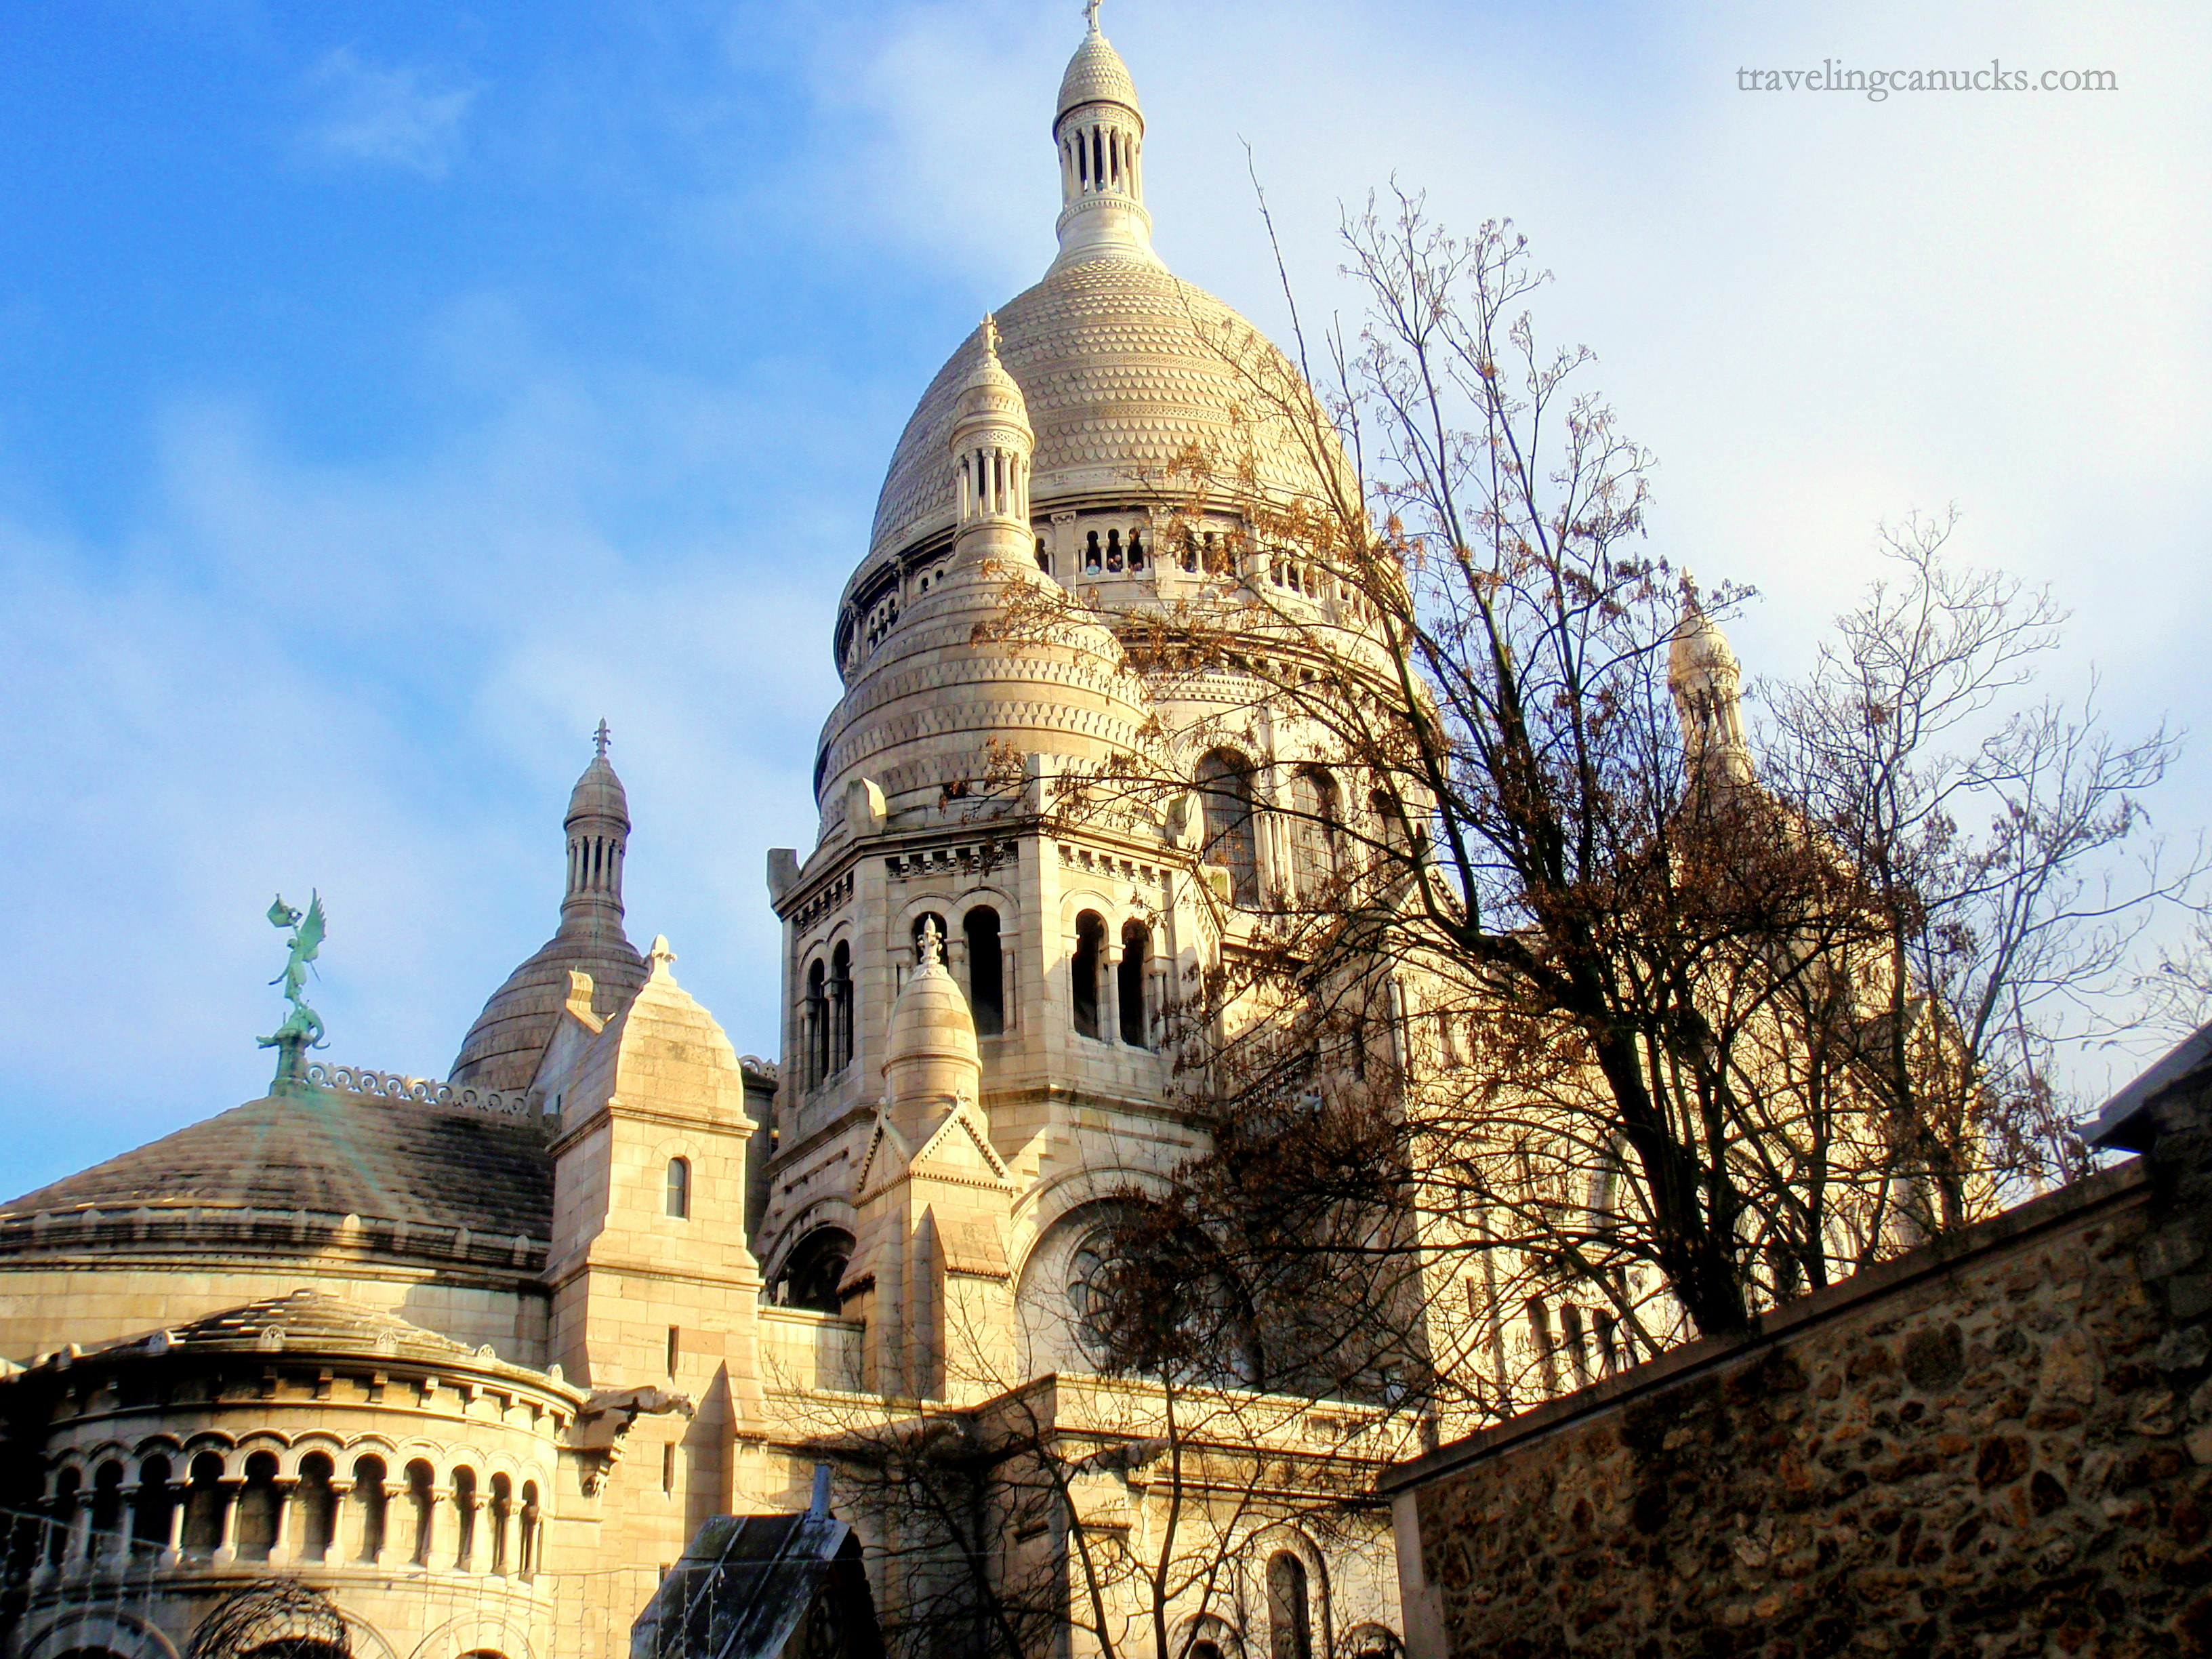 Photo of the Week: Sacre Coeur Basilica, Paris